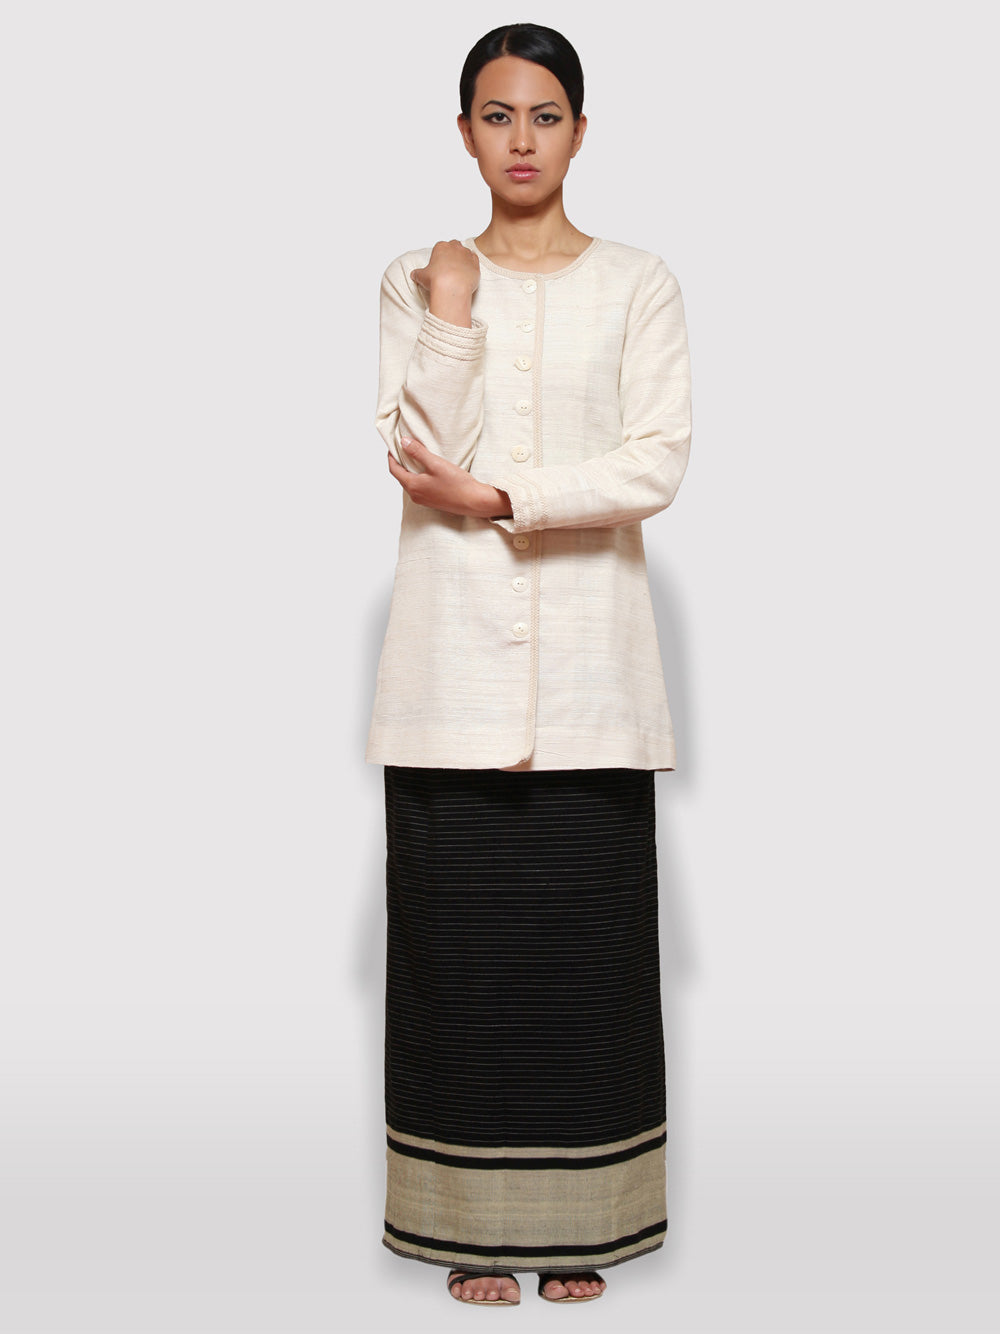 Handwoven Pinstripe wrap-around skirt inspired by traditional Meitei attire designed by Khumanthem Atelier